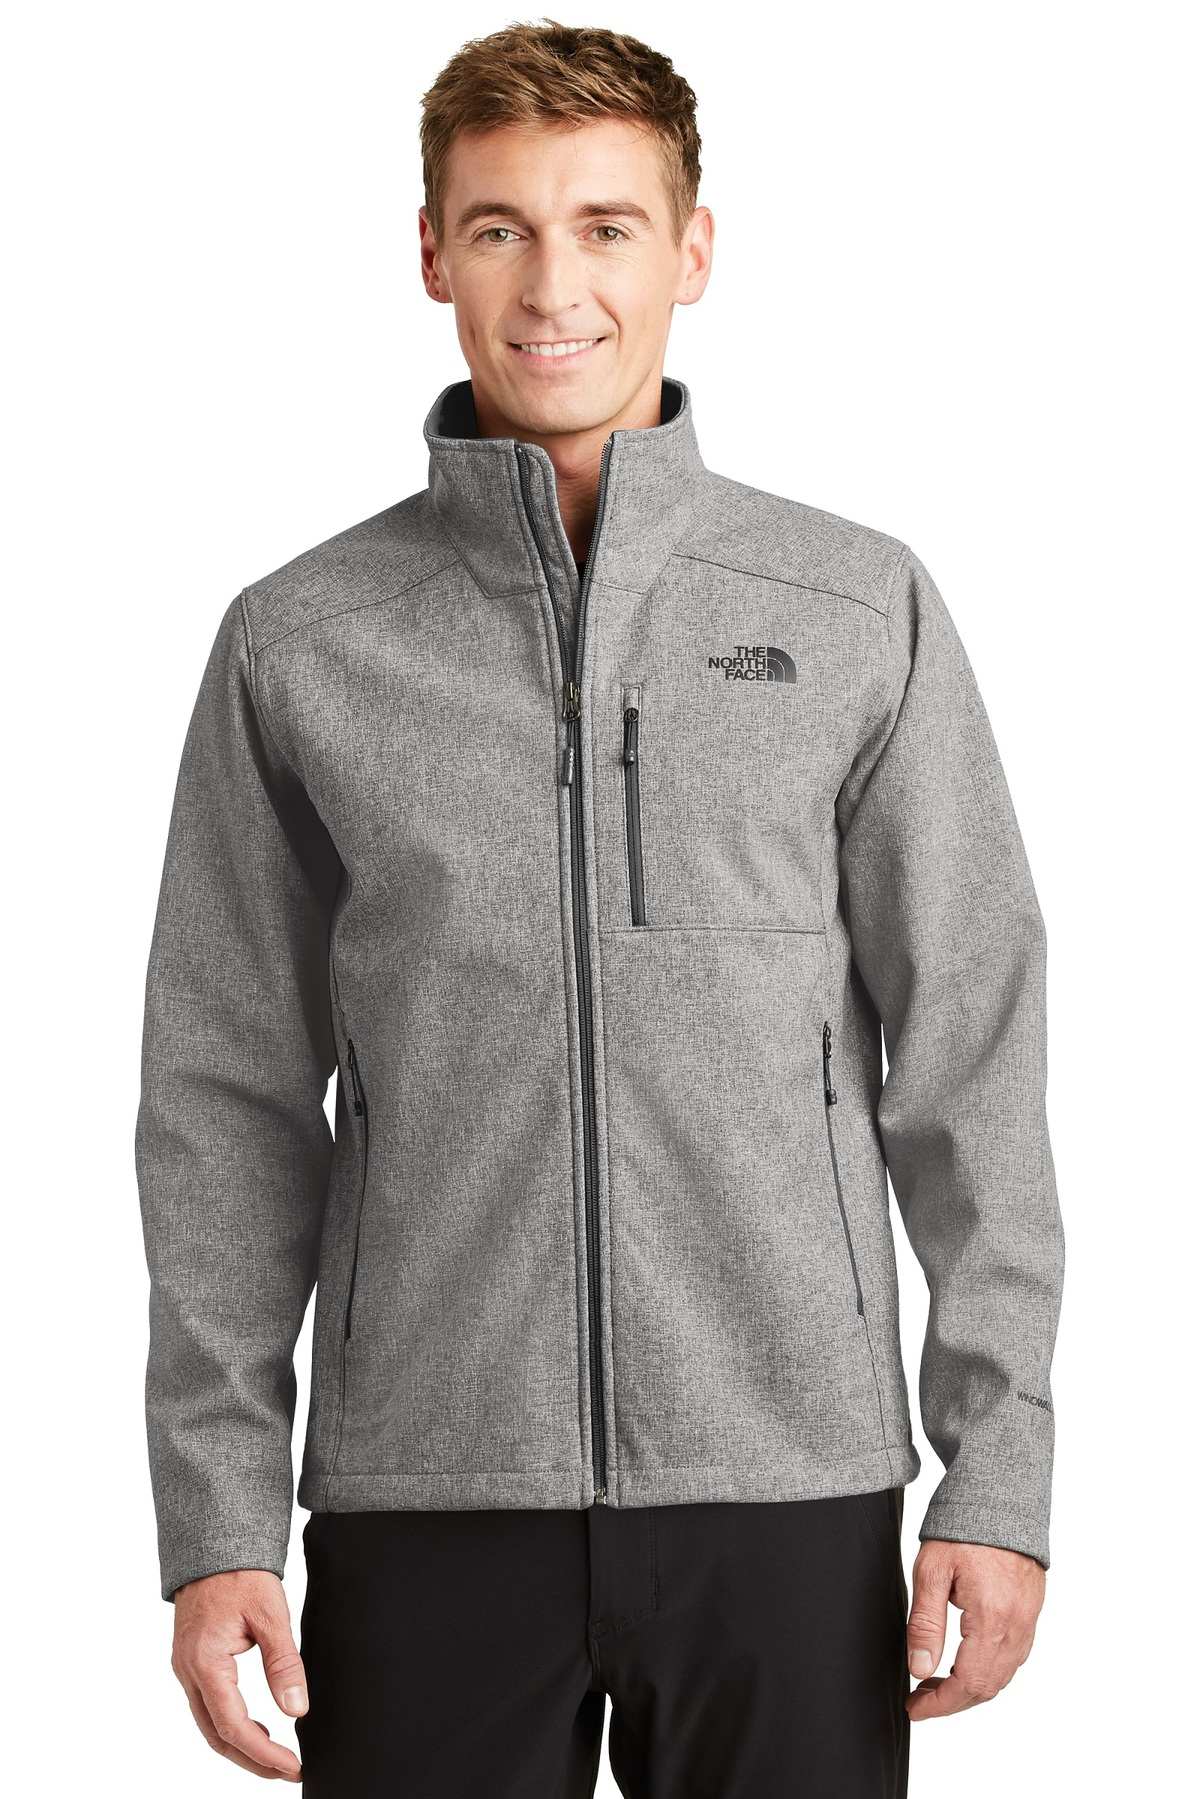 c0e45786f3c The North Face Embroidered Men s Apex Barrier Soft Shell Jacket - Queensboro